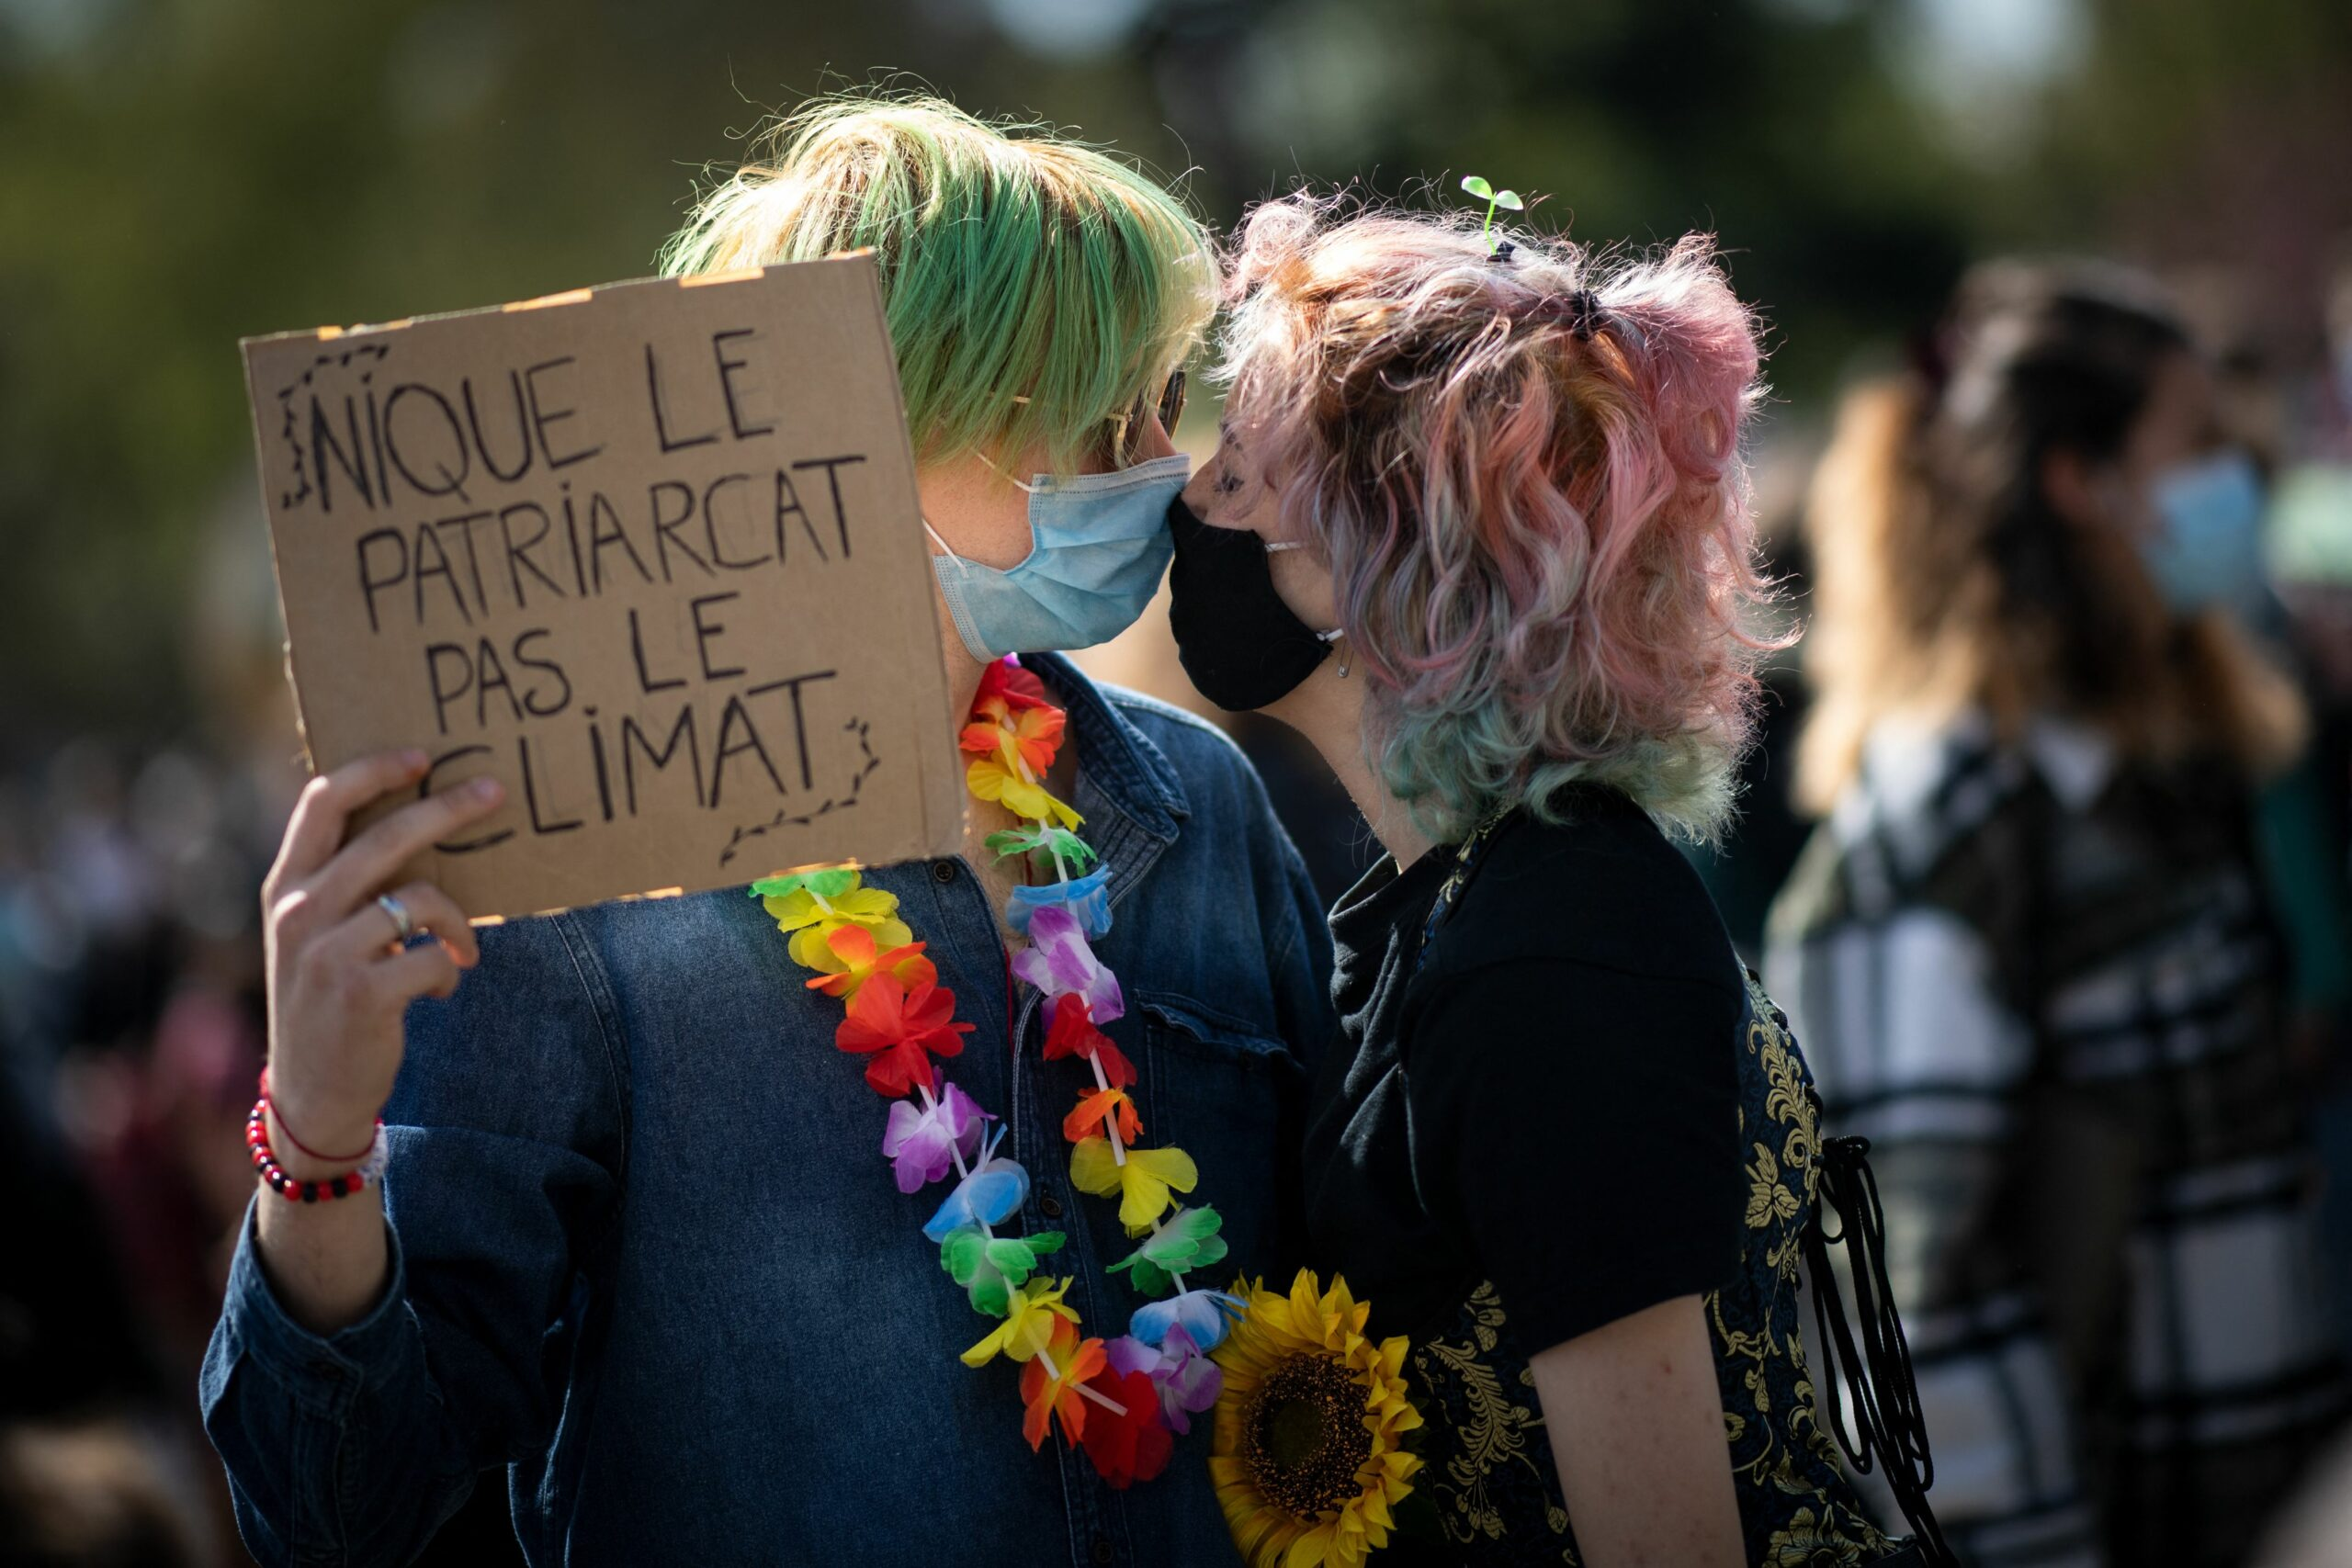 """Demonstrators kiss with their protective face masks, as they hold a placard reading """"down with the patriarchy, not the climate"""", during a demonstration called by youth for climate and several NGOs and unions for a """"true"""" law on climate, in Nantes, western France, on March 28, 2021. Credit: Loic Venance/AFP via Getty Images"""